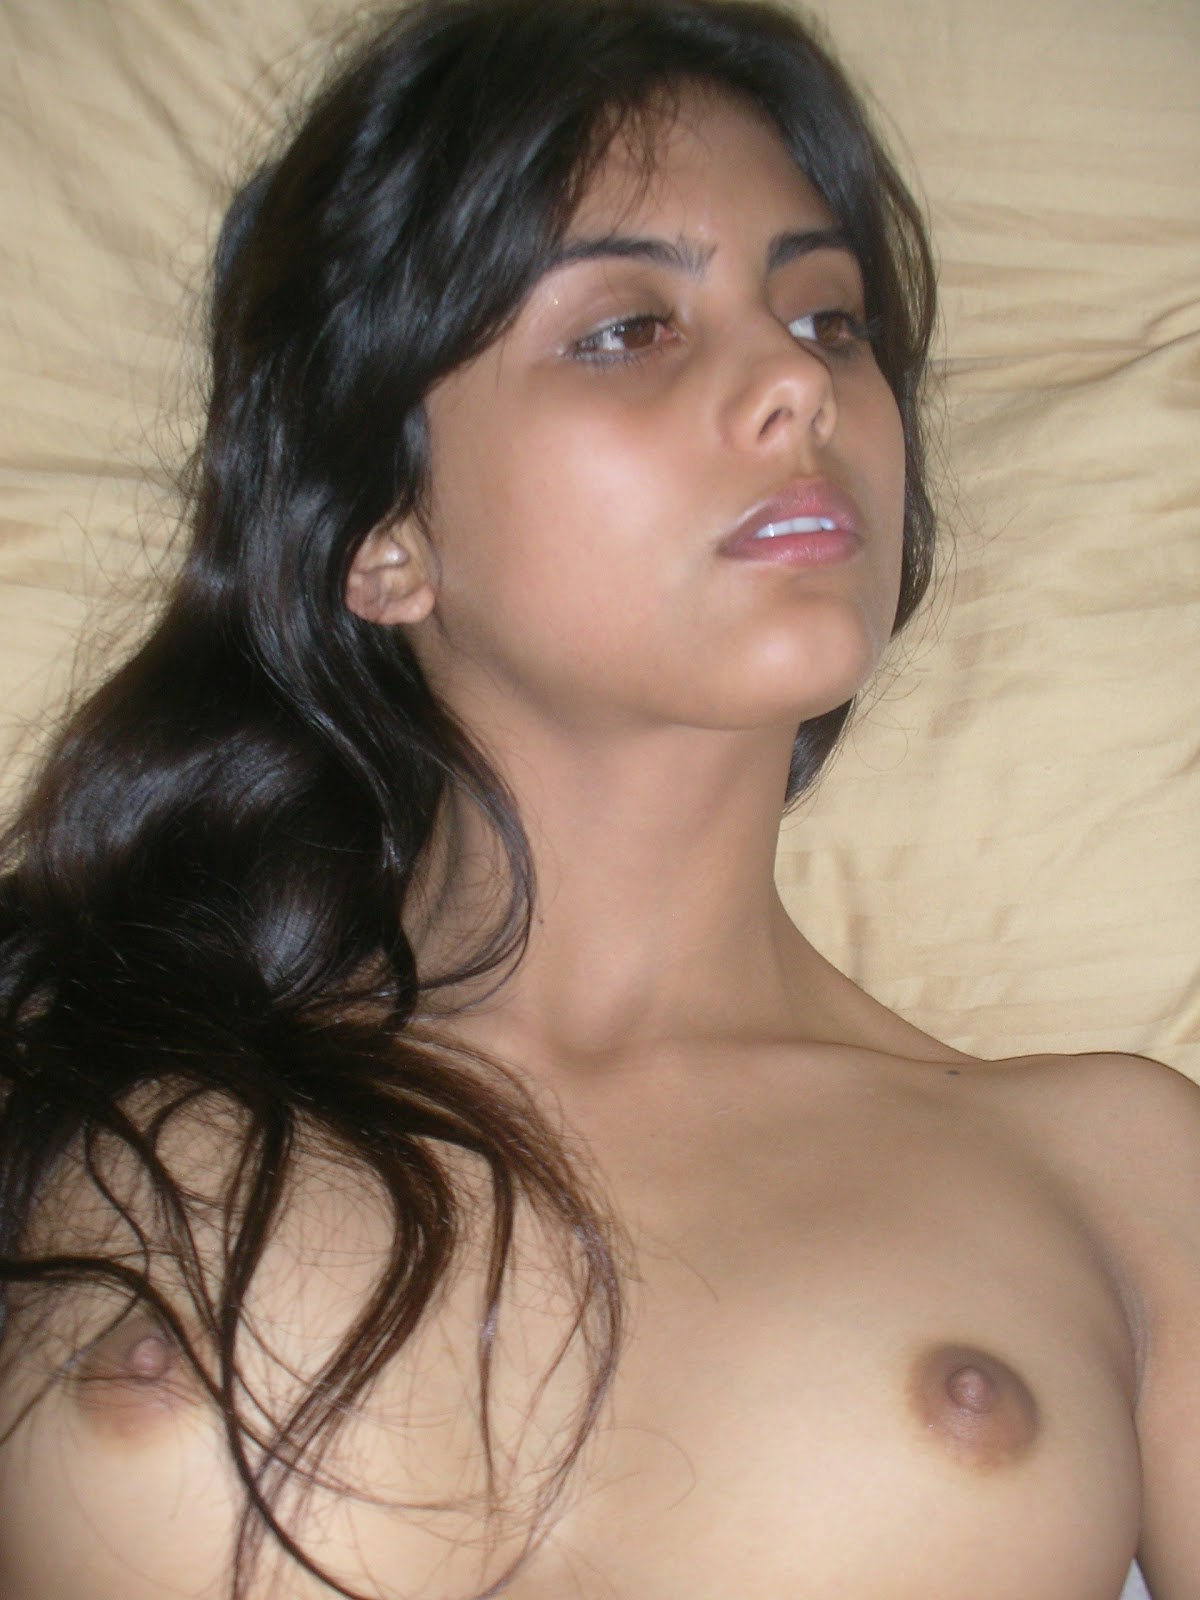 Sexy nude indian girls photos 1